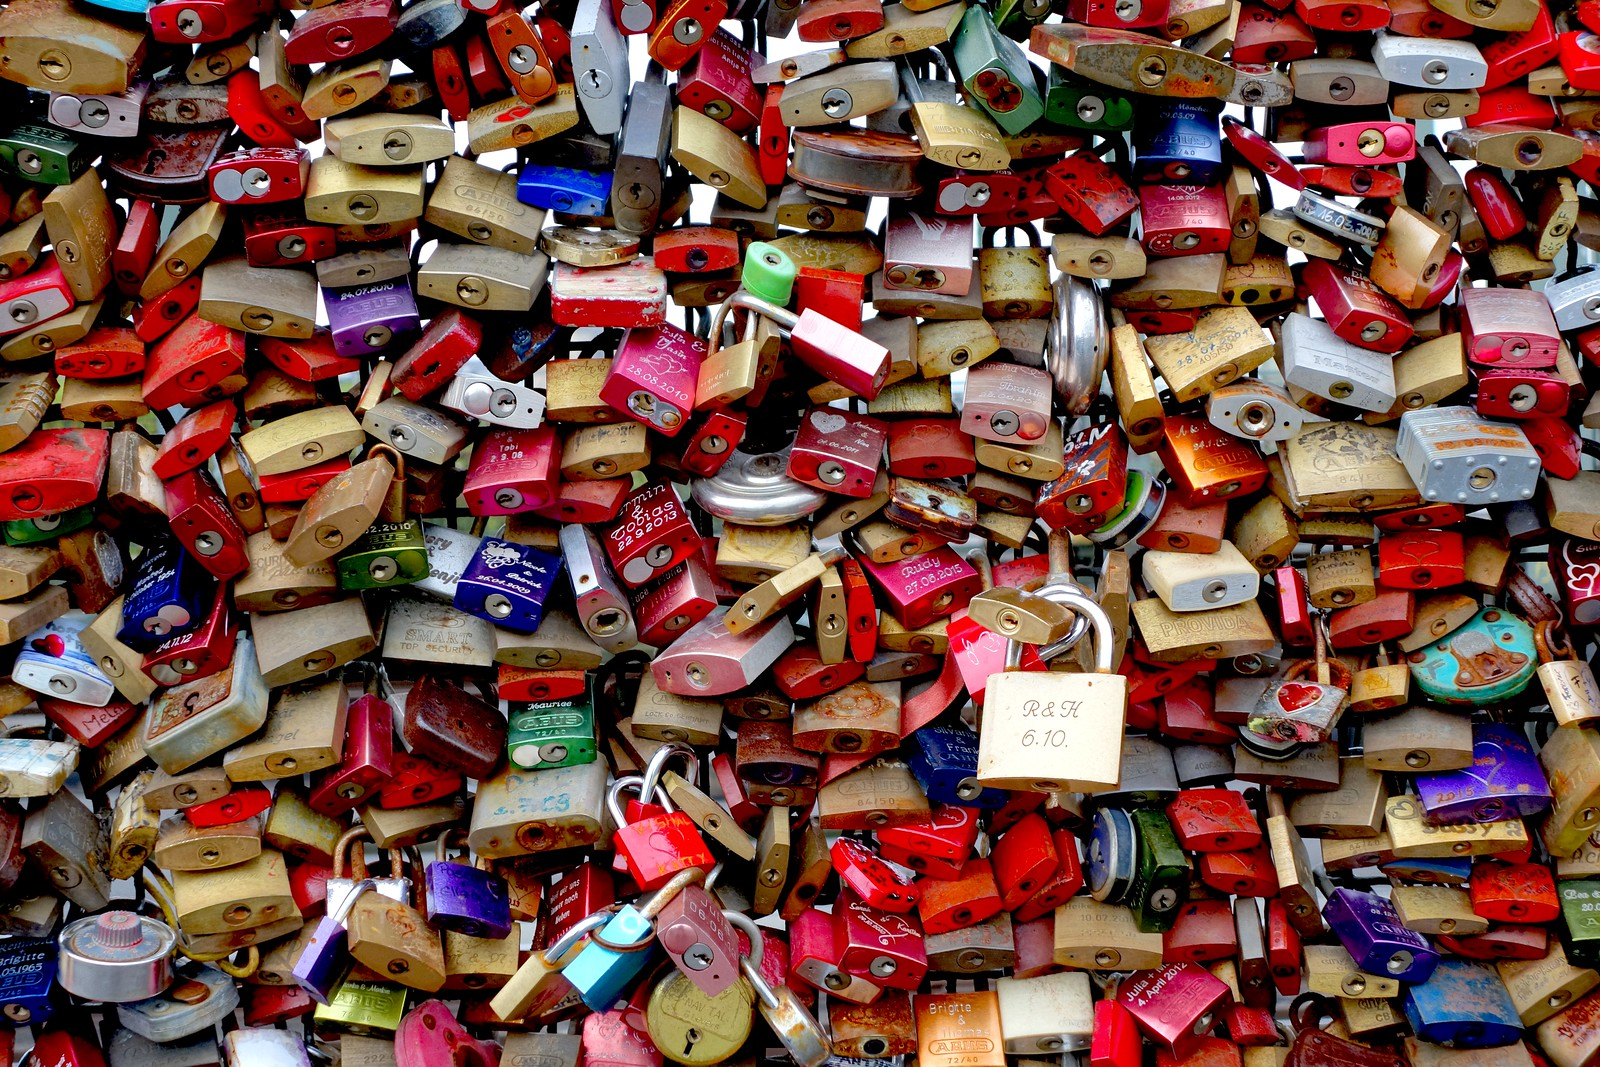 Locks on a bridge in Cologne (Köln), Germany